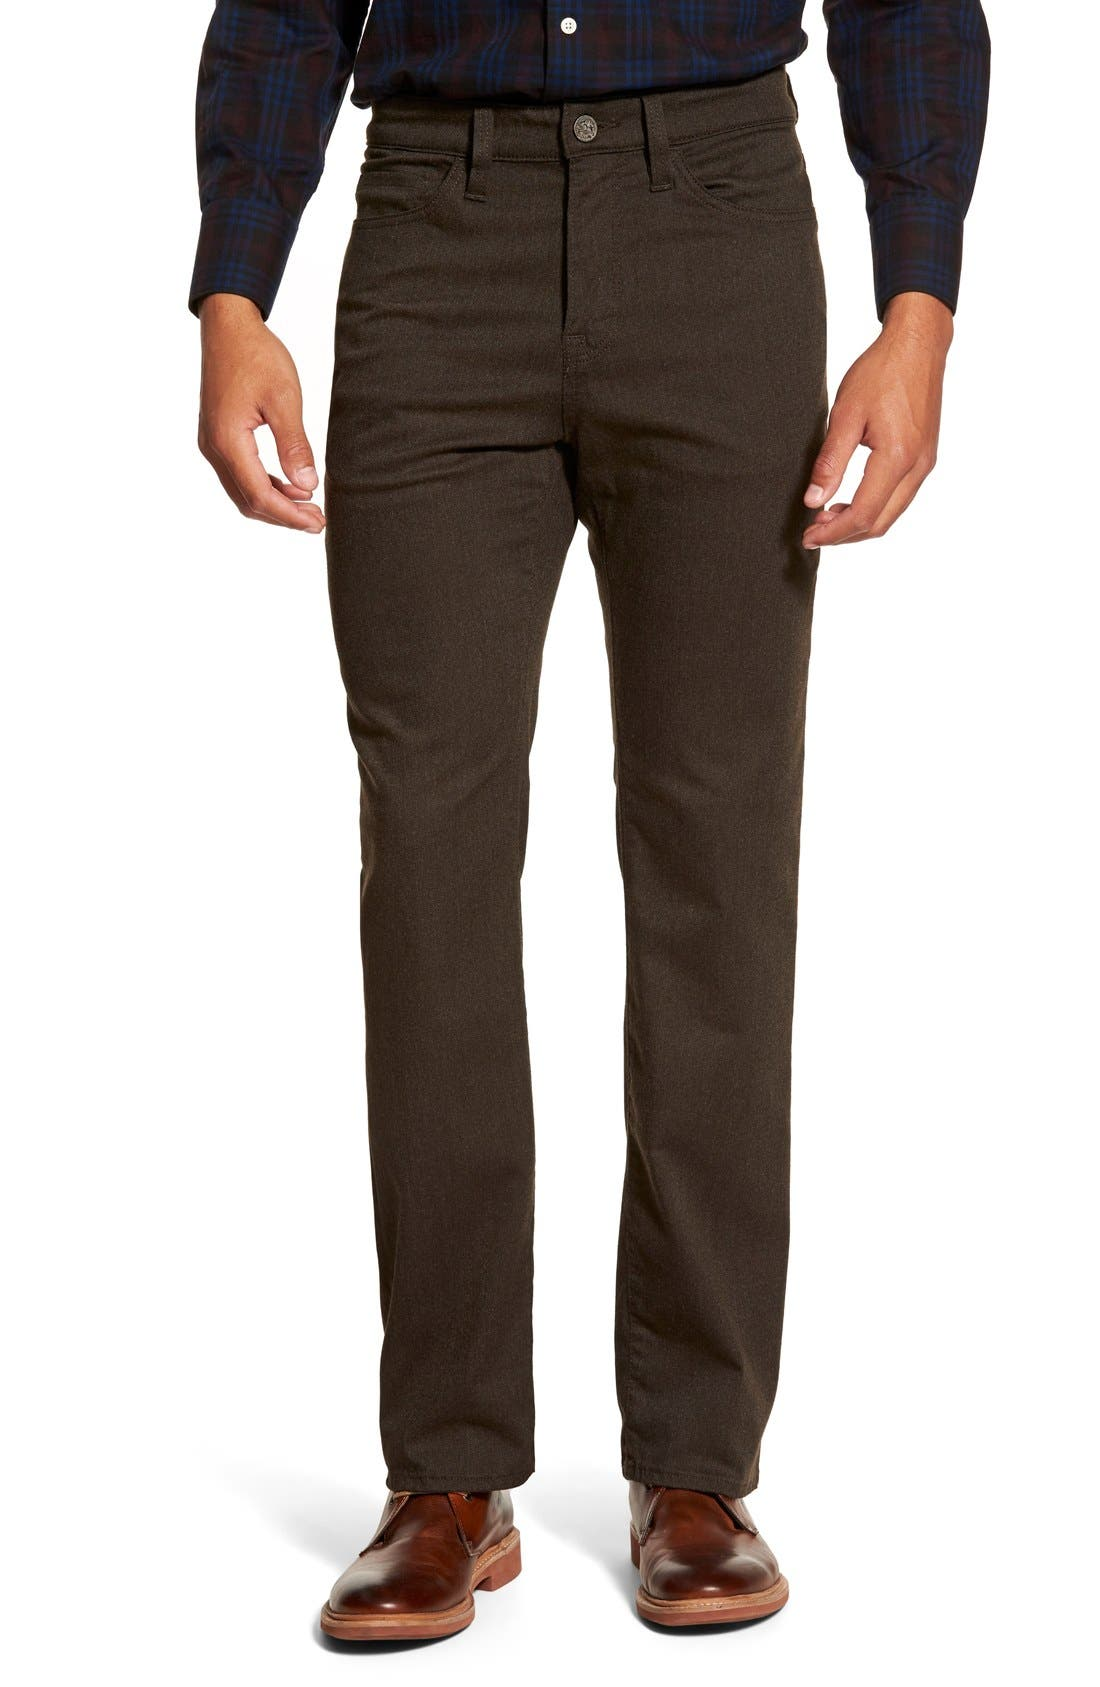 'Charisma' Relaxed Fit Jeans,                         Main,                         color, 200